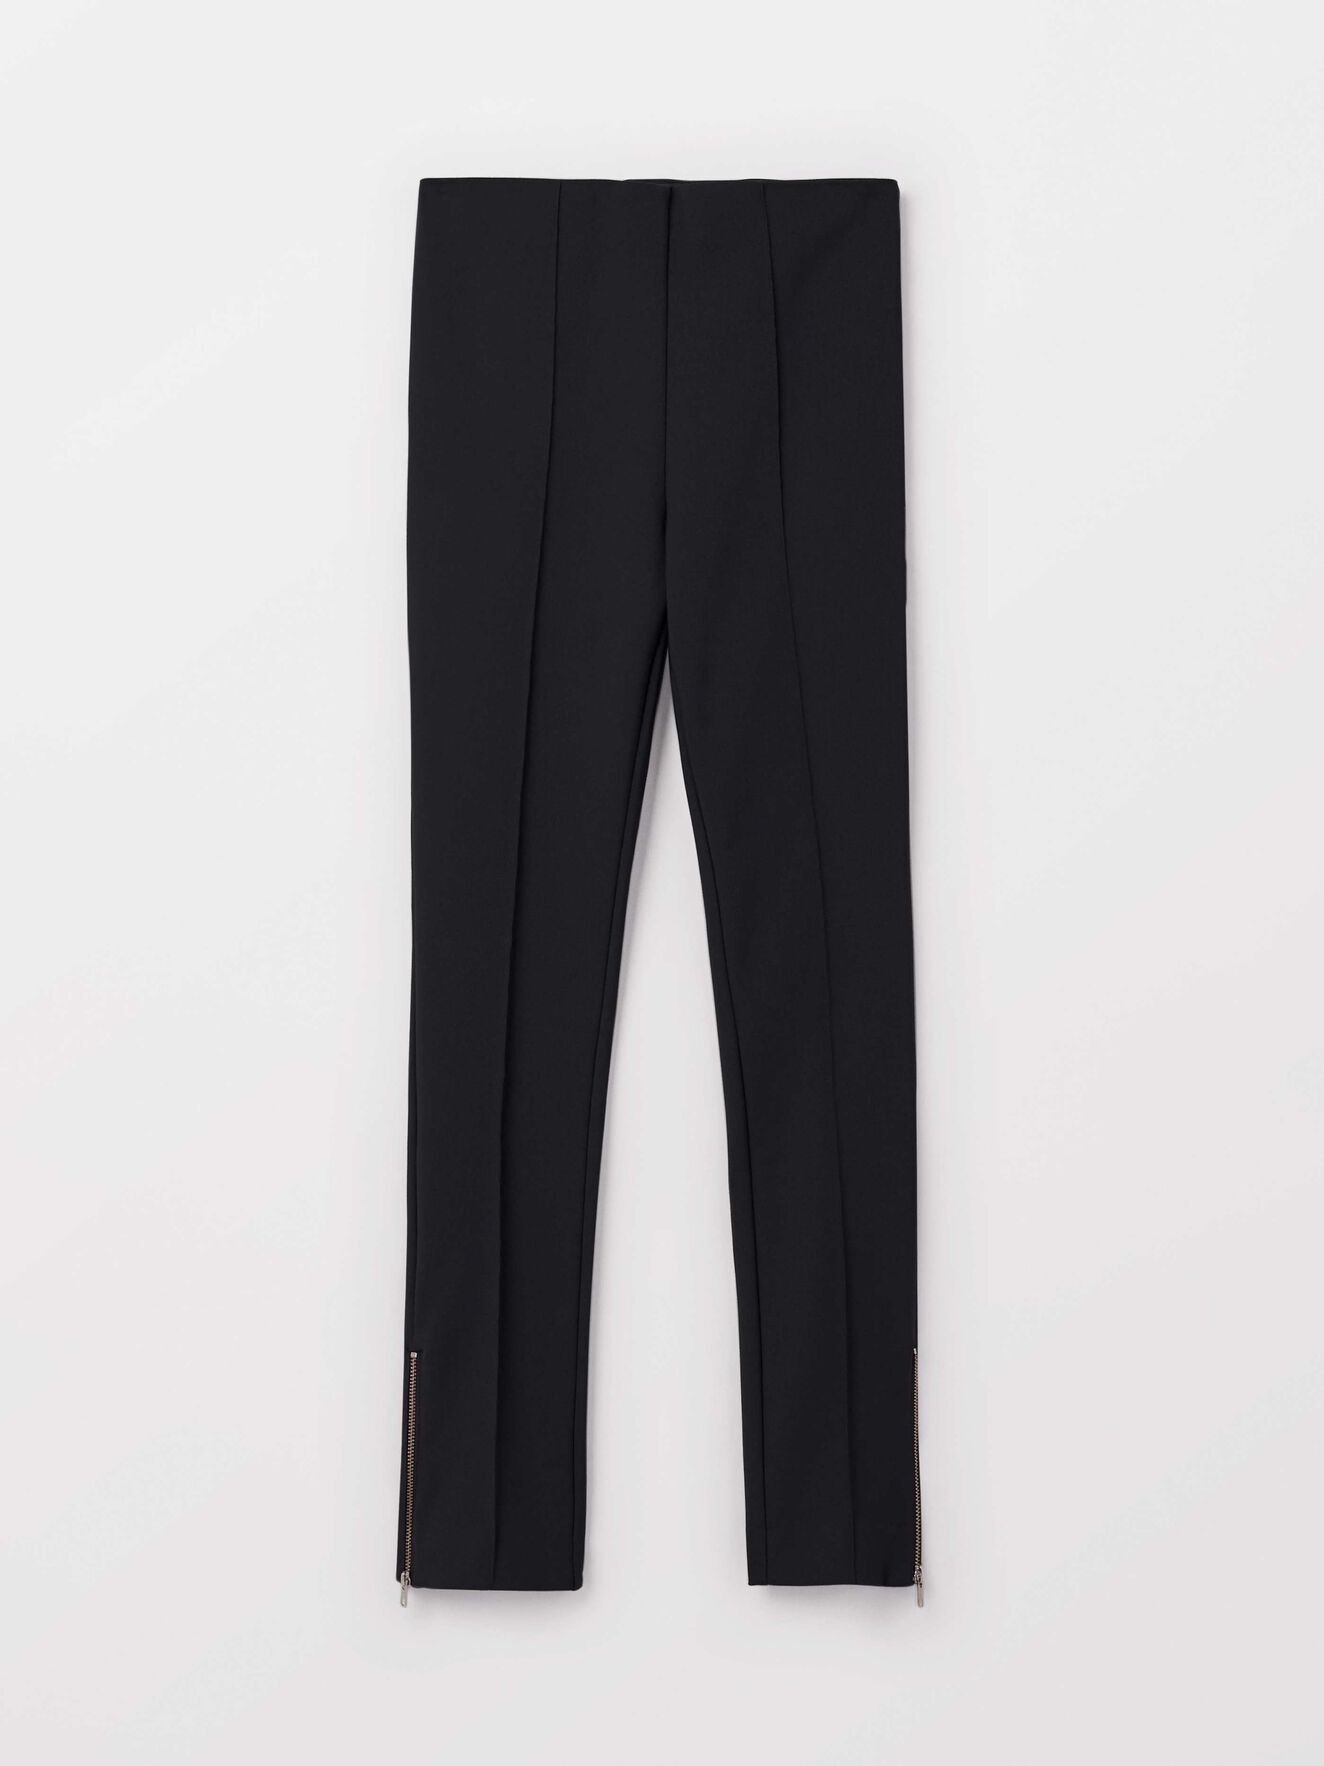 Loane 2 Trousers in Black from Tiger of Sweden